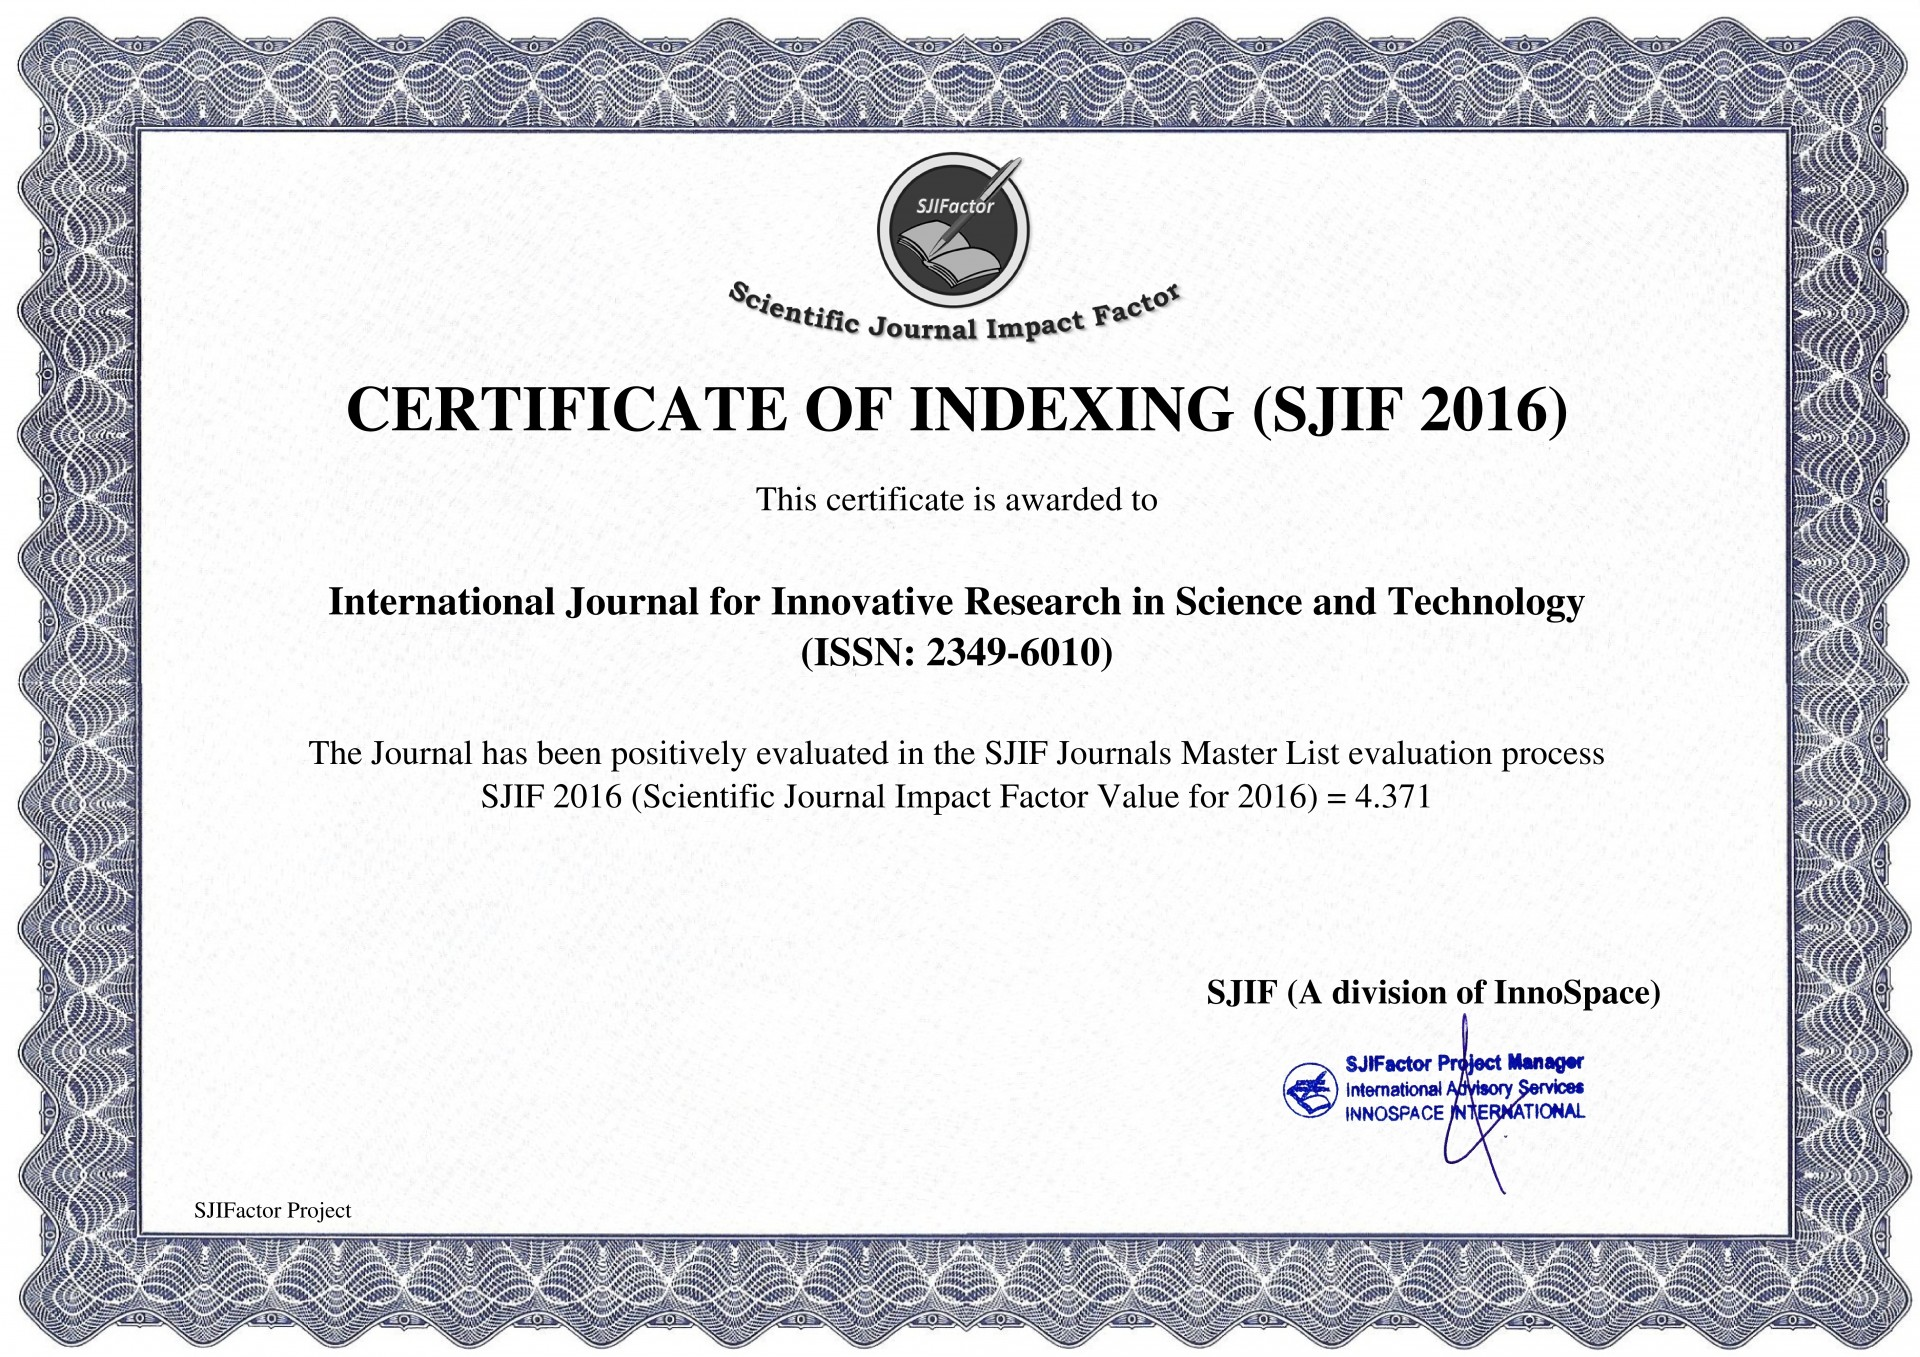 012 Impact Factor Research Paper How To Publish In International Journal Free Unusual Pdf 1920